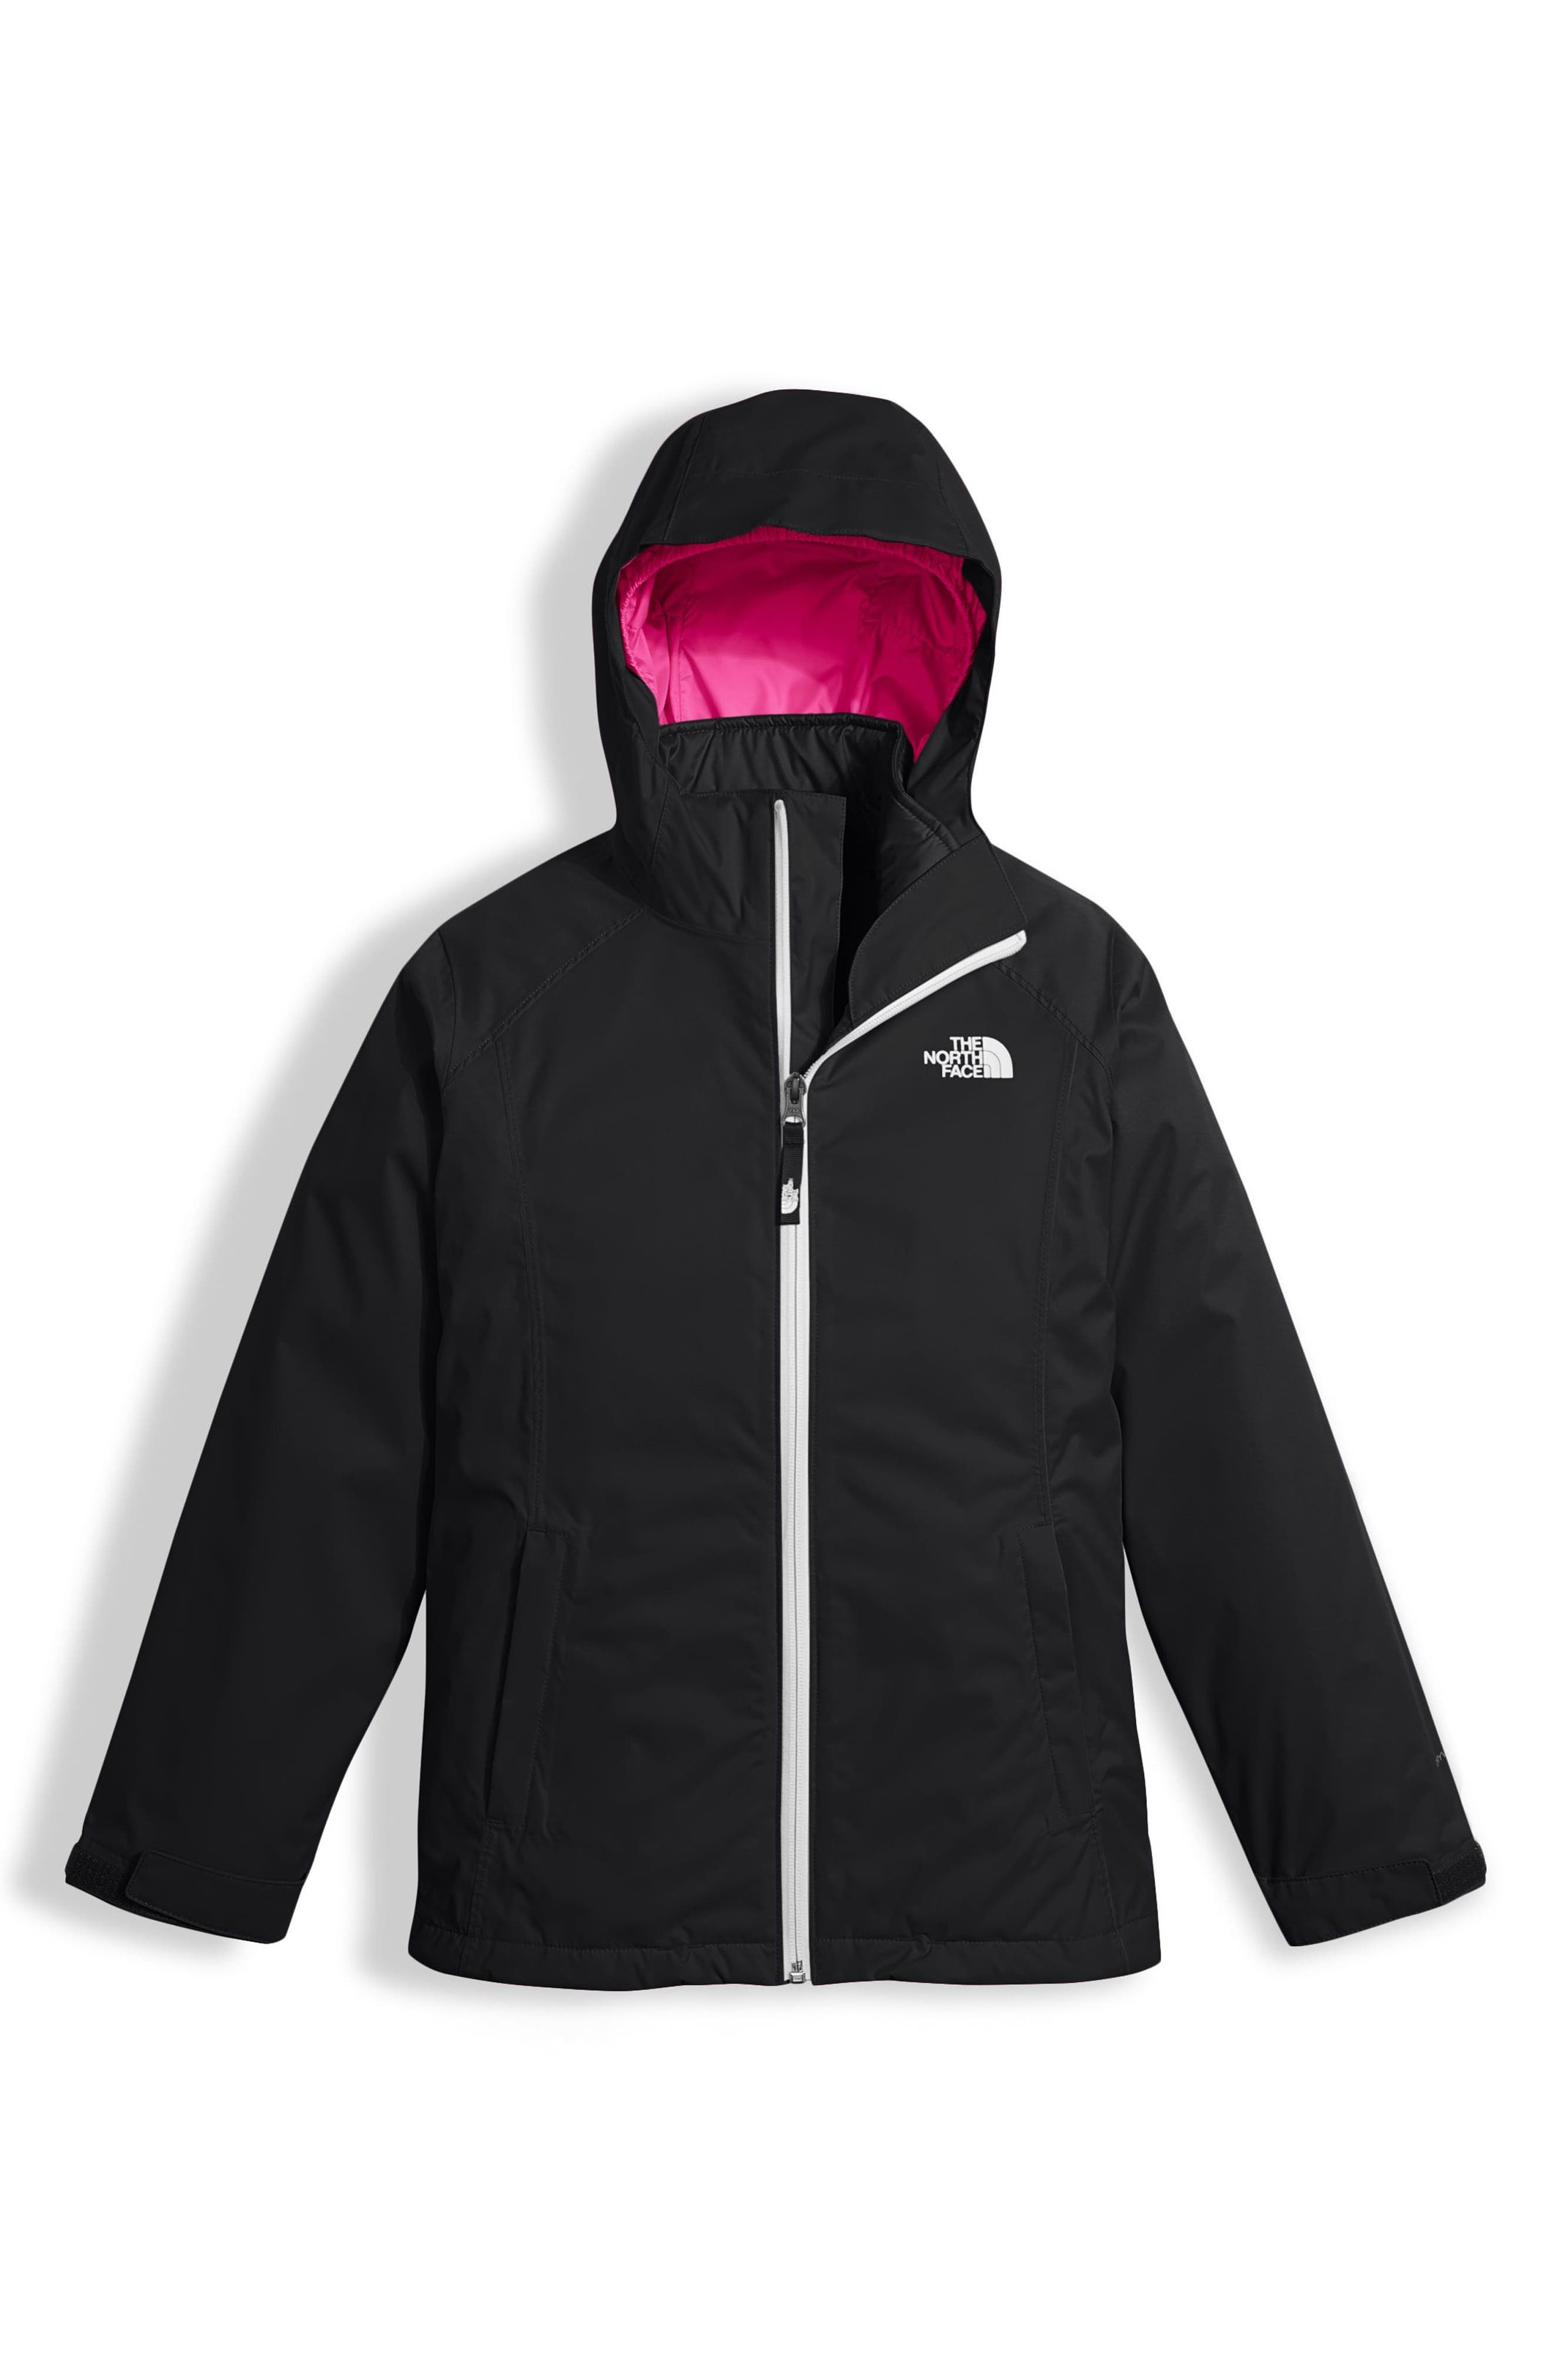 East Ridge Triclimate<sup>®</sup> Waterproof 3-in-1 Jacket,                         Main,                         color,